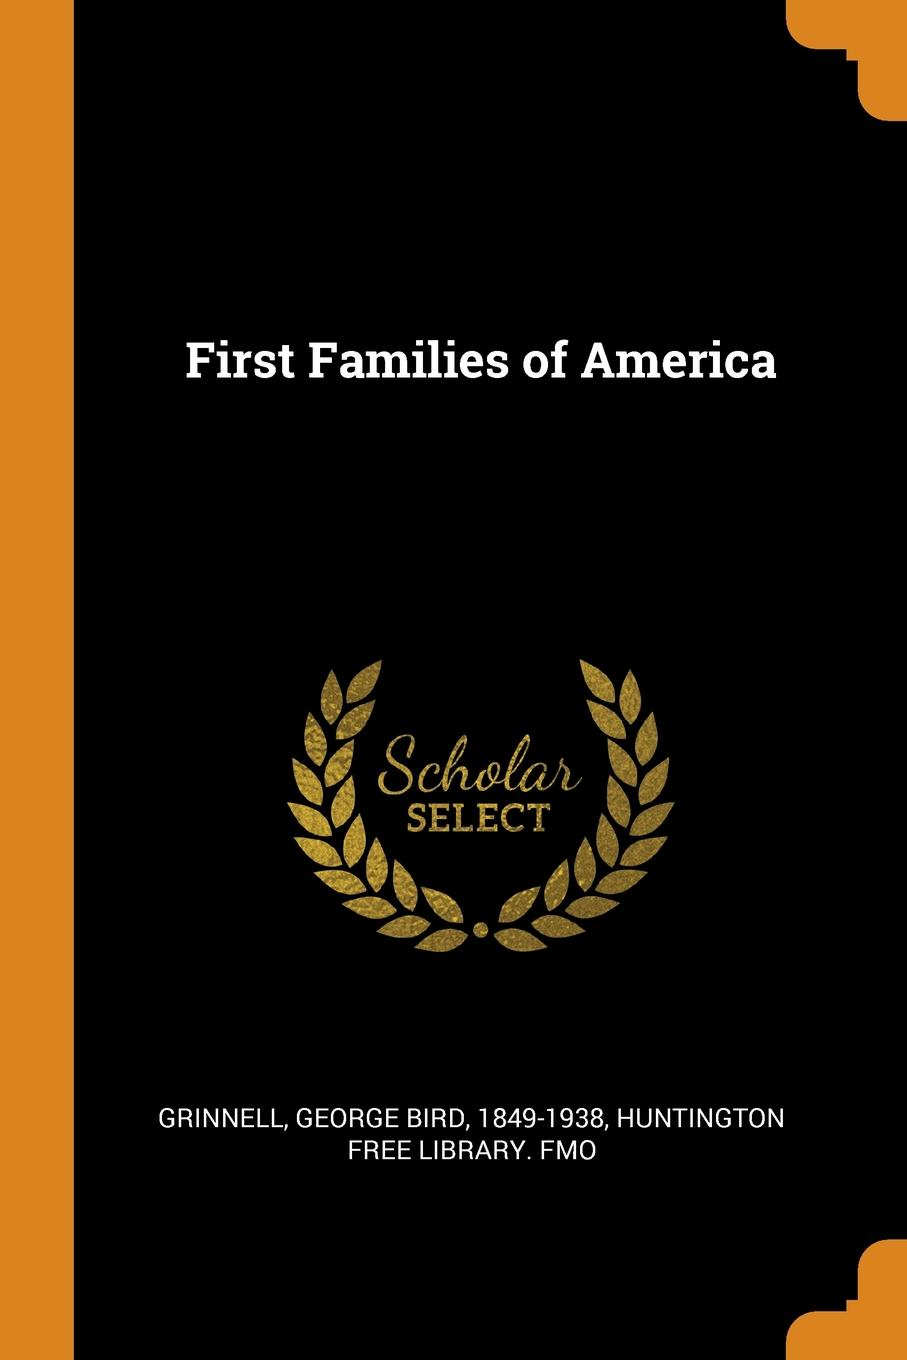 George Bird Grinnell First Families of America